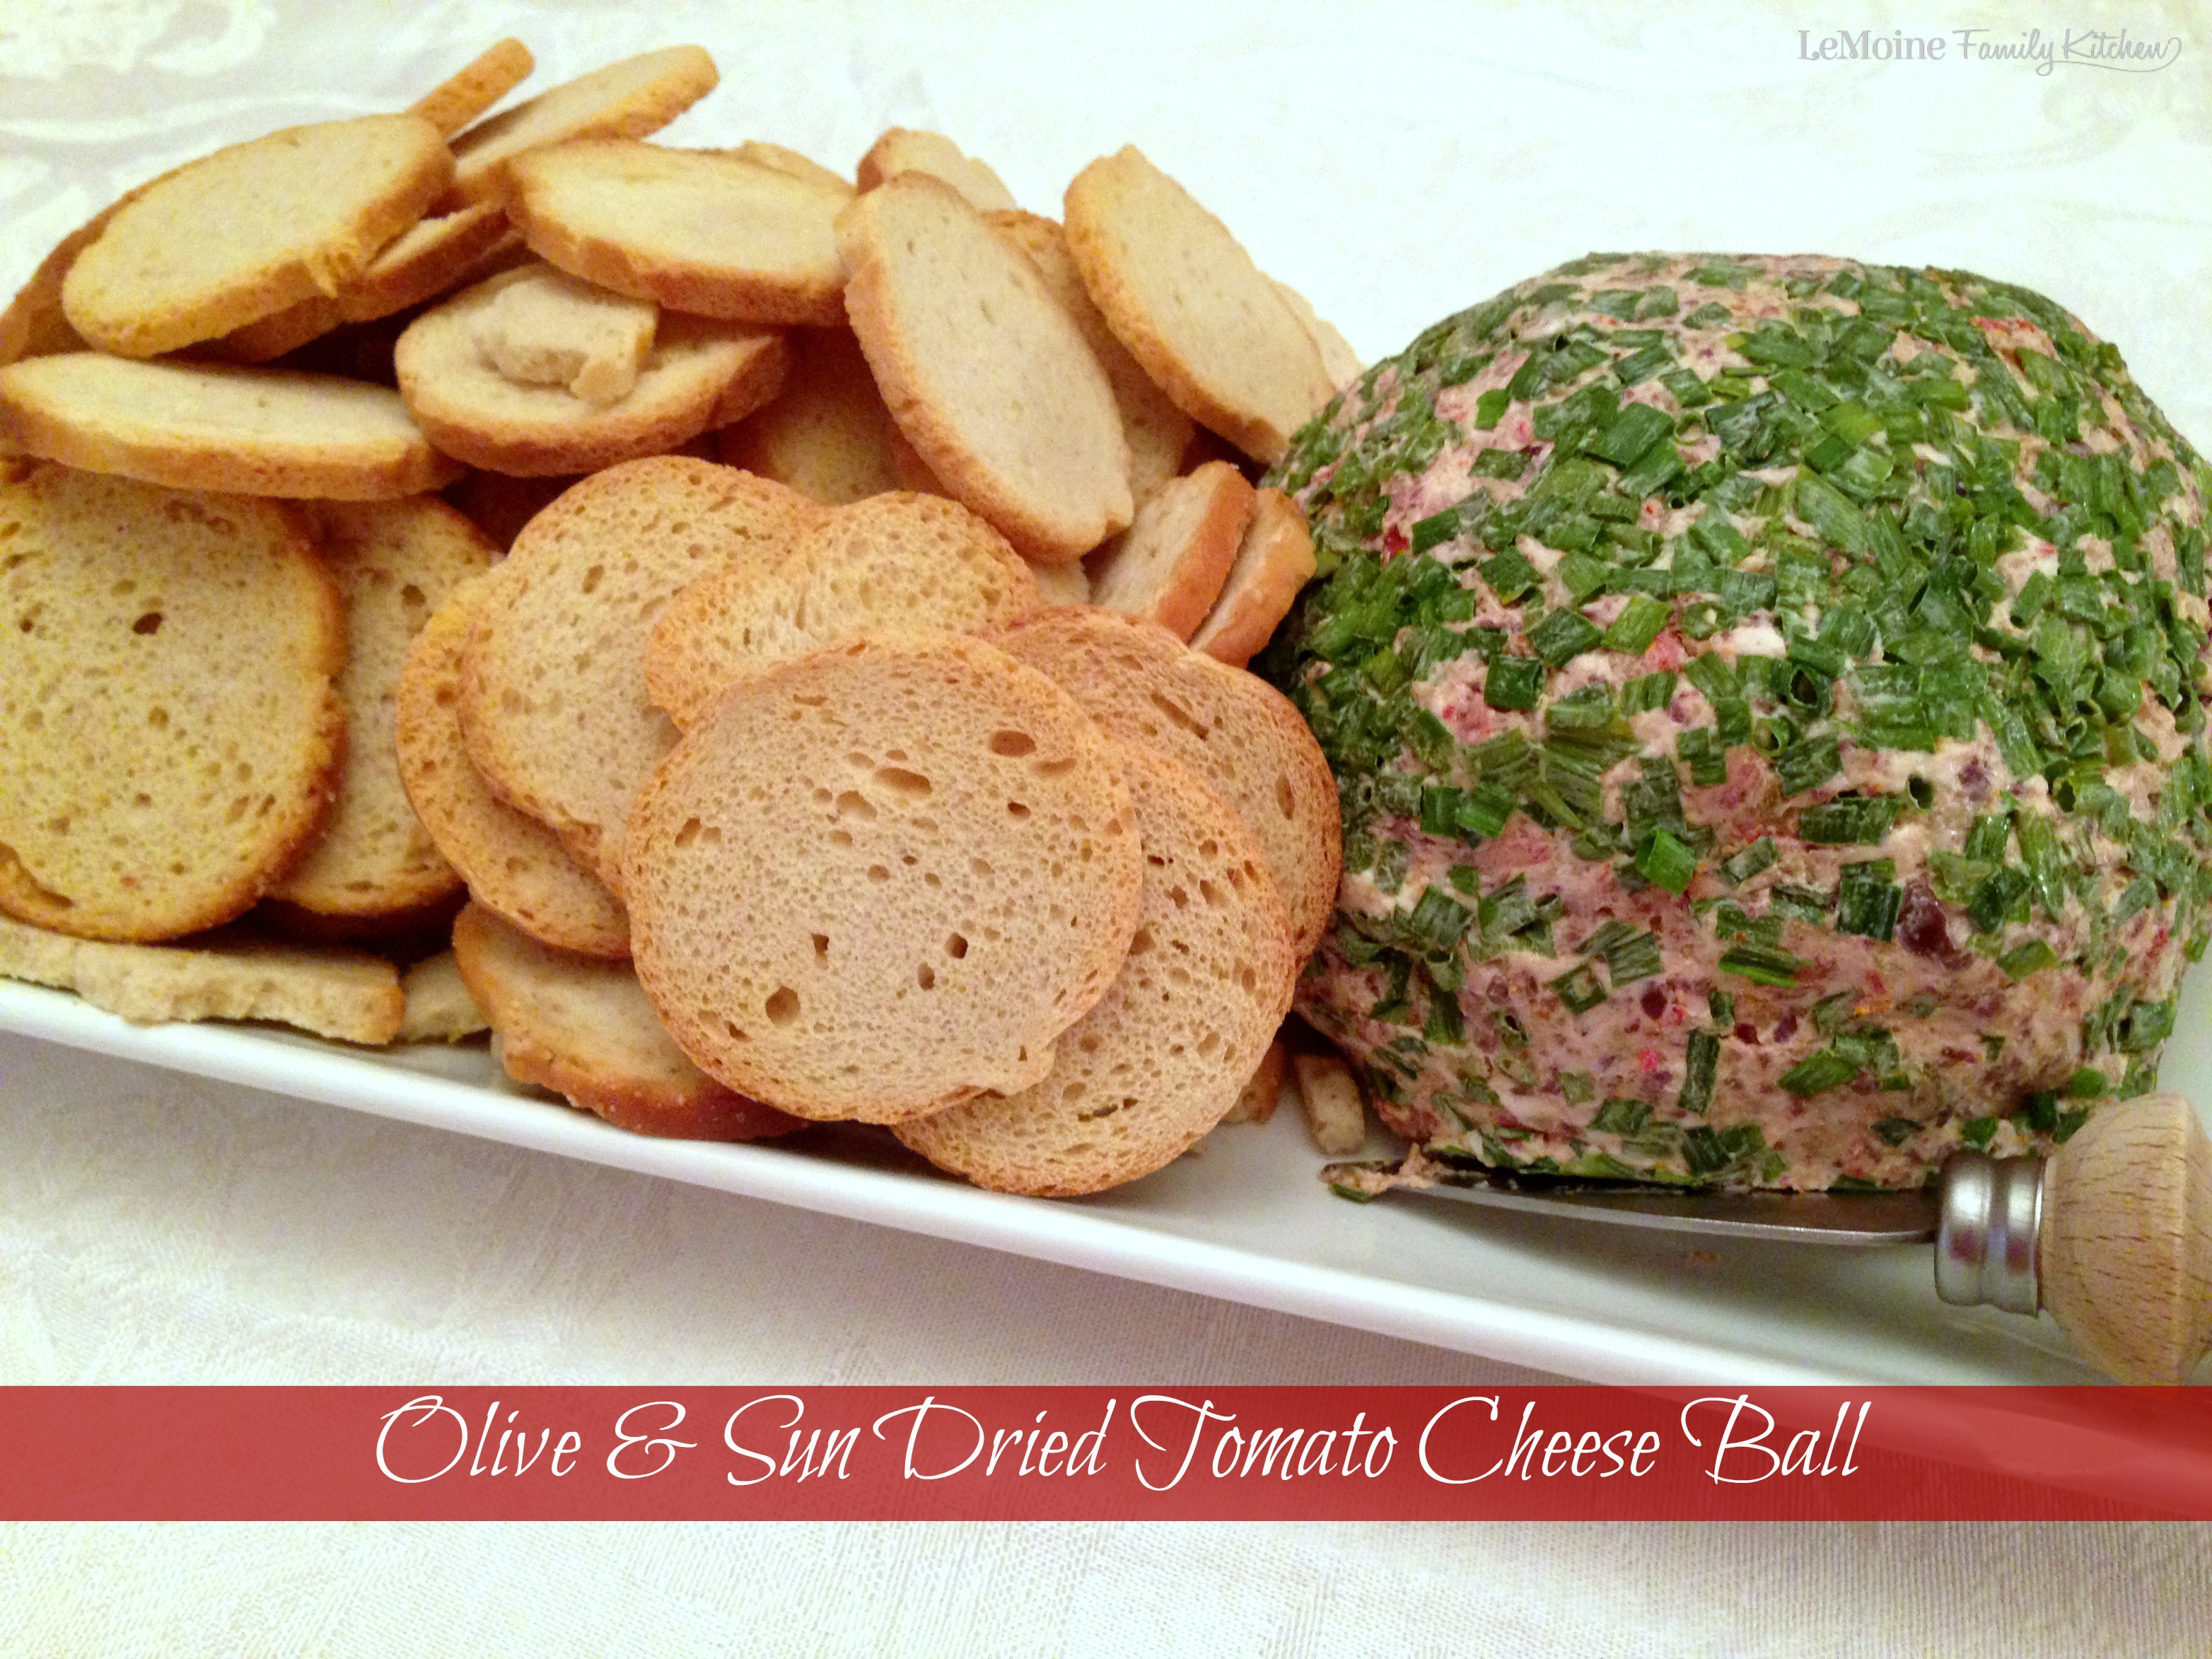 Olive & Sun Dried Tomato Cheese Ball